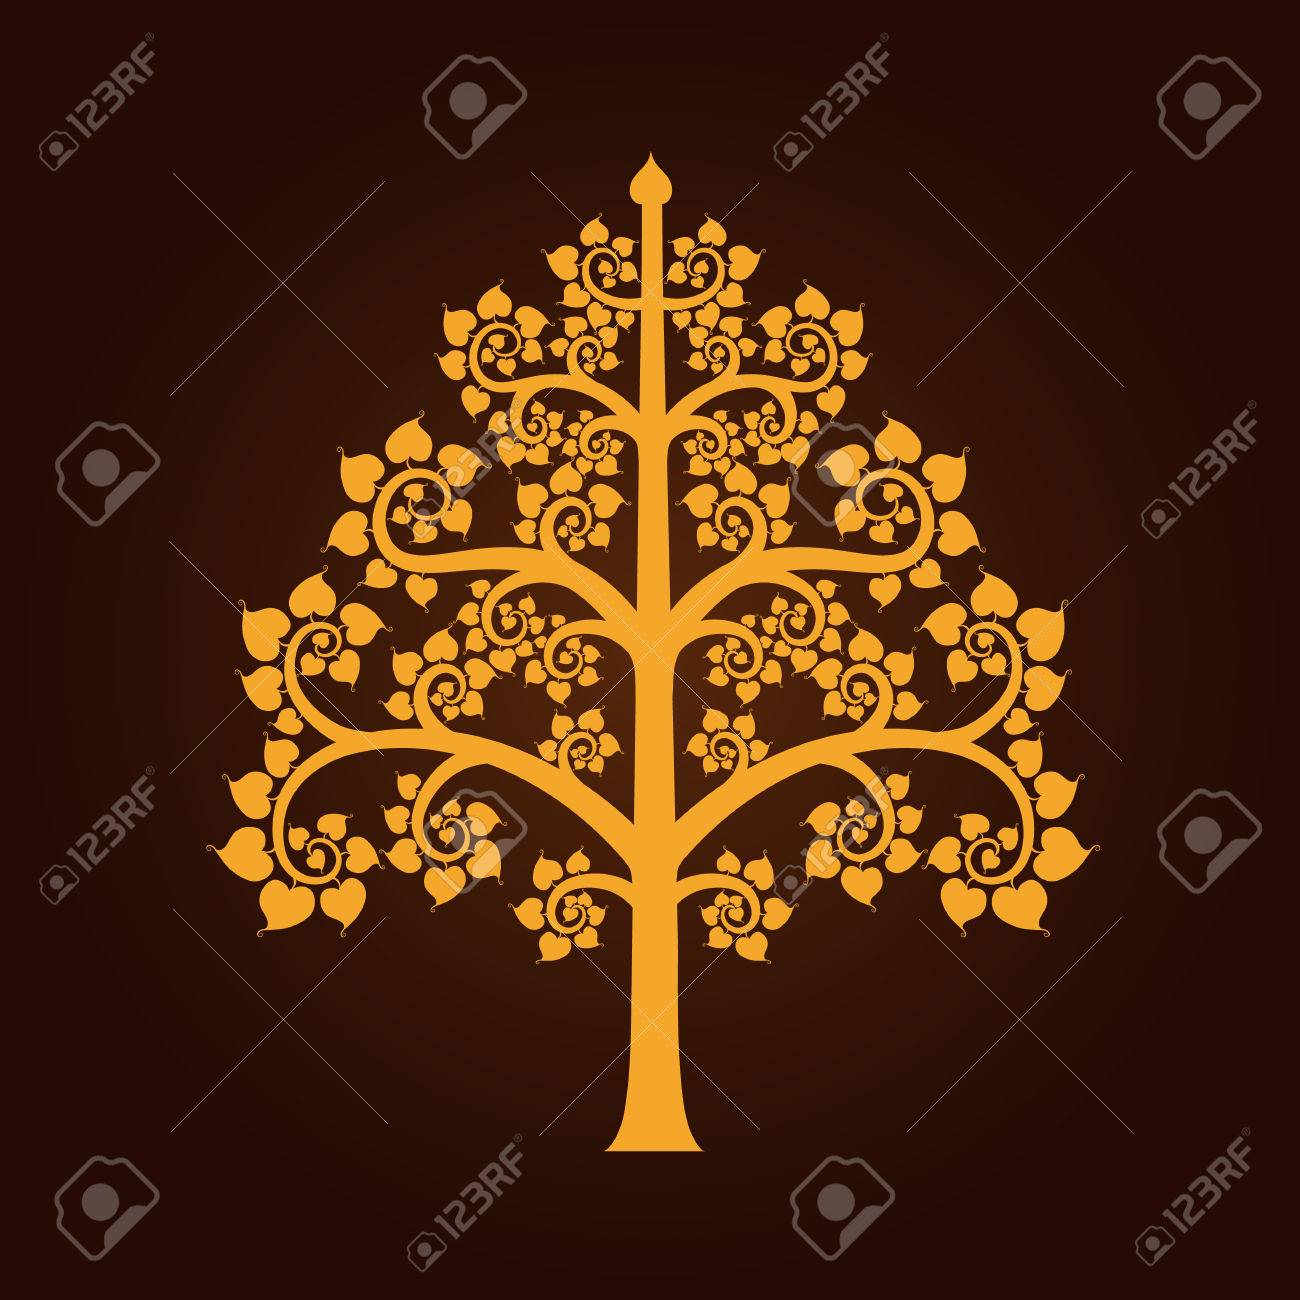 858 buddha tree stock illustrations cliparts and royalty free golden bodhi tree symbol with thai style isolate on black background vector illustration illustration biocorpaavc Choice Image